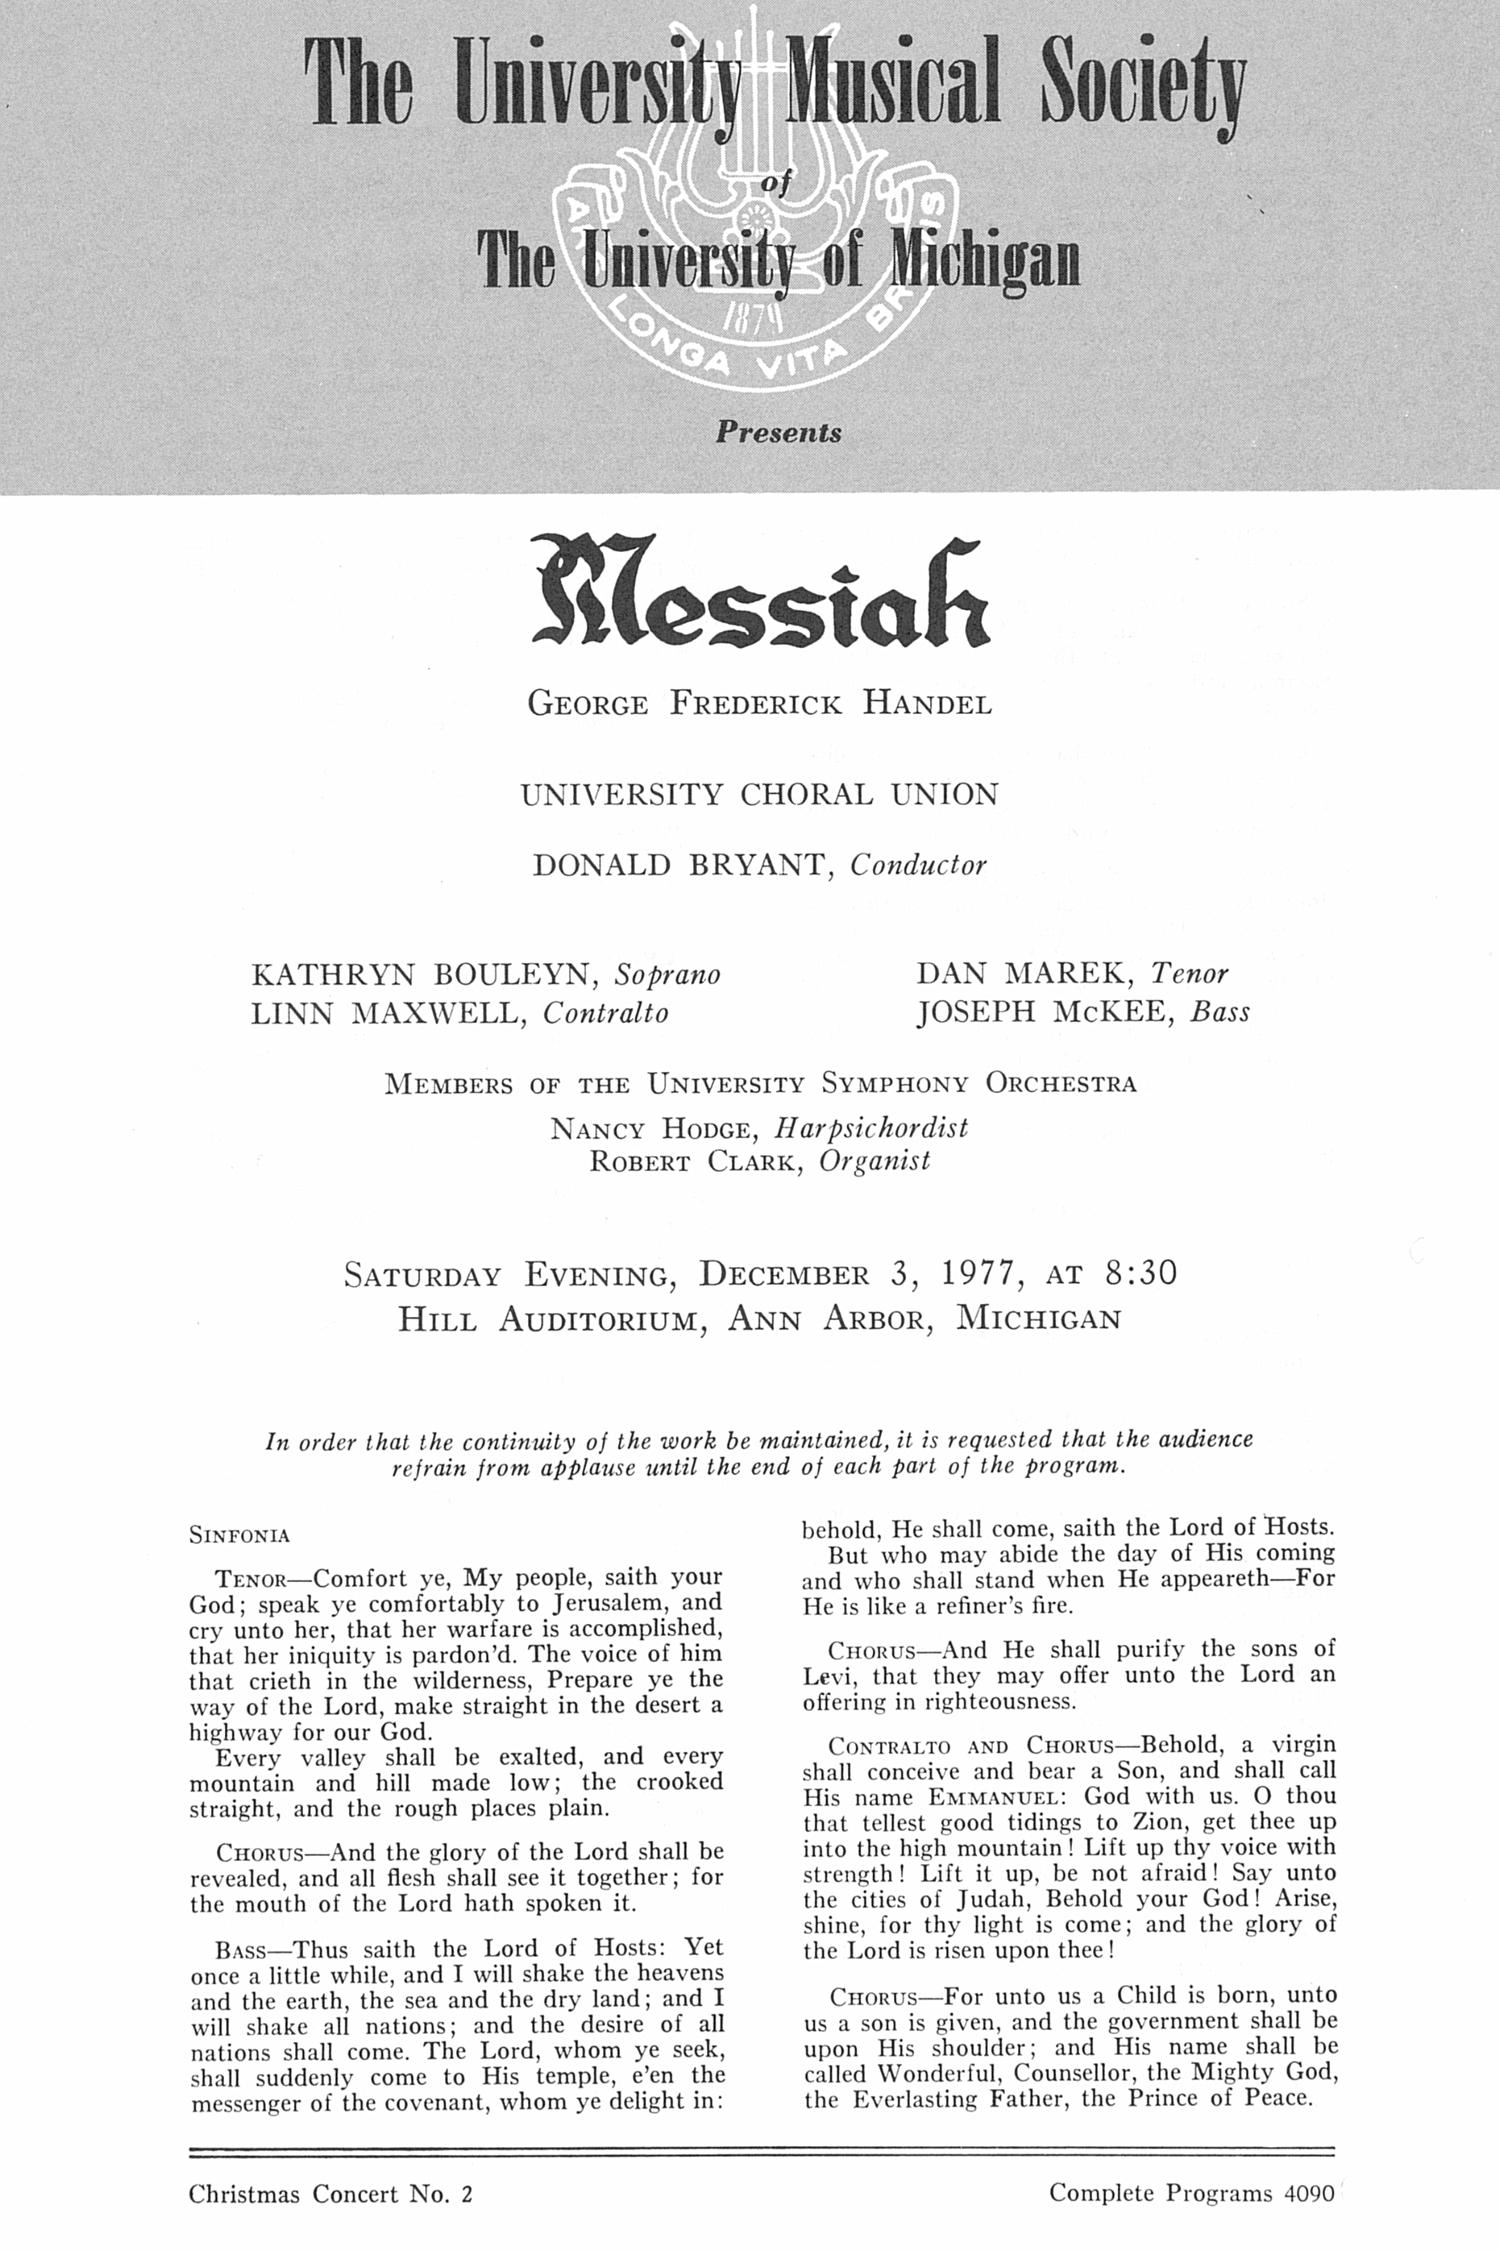 UMS Concert Program, December 3, 1977: Messiah -- George Frederick Handel image